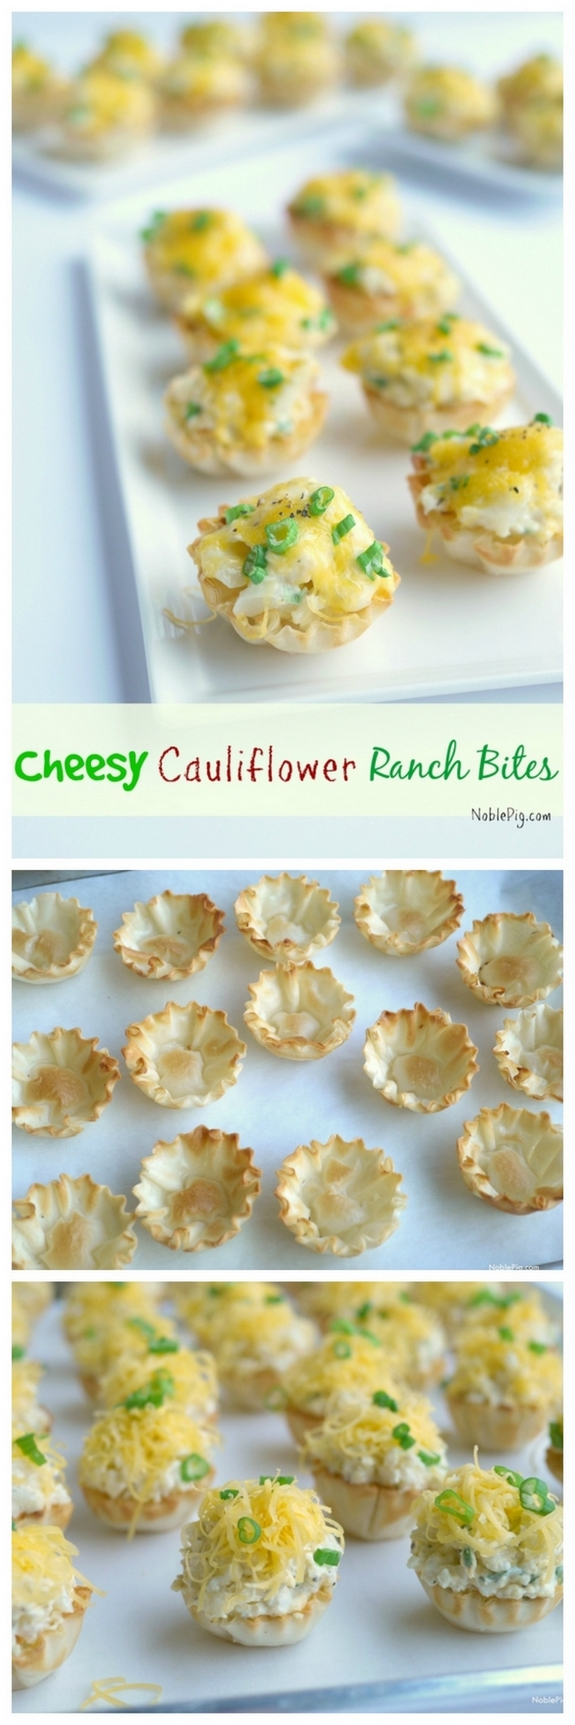 Cheesy Cauliflower Ranch Bites from Noble Pig Oregon Pinterest Collage